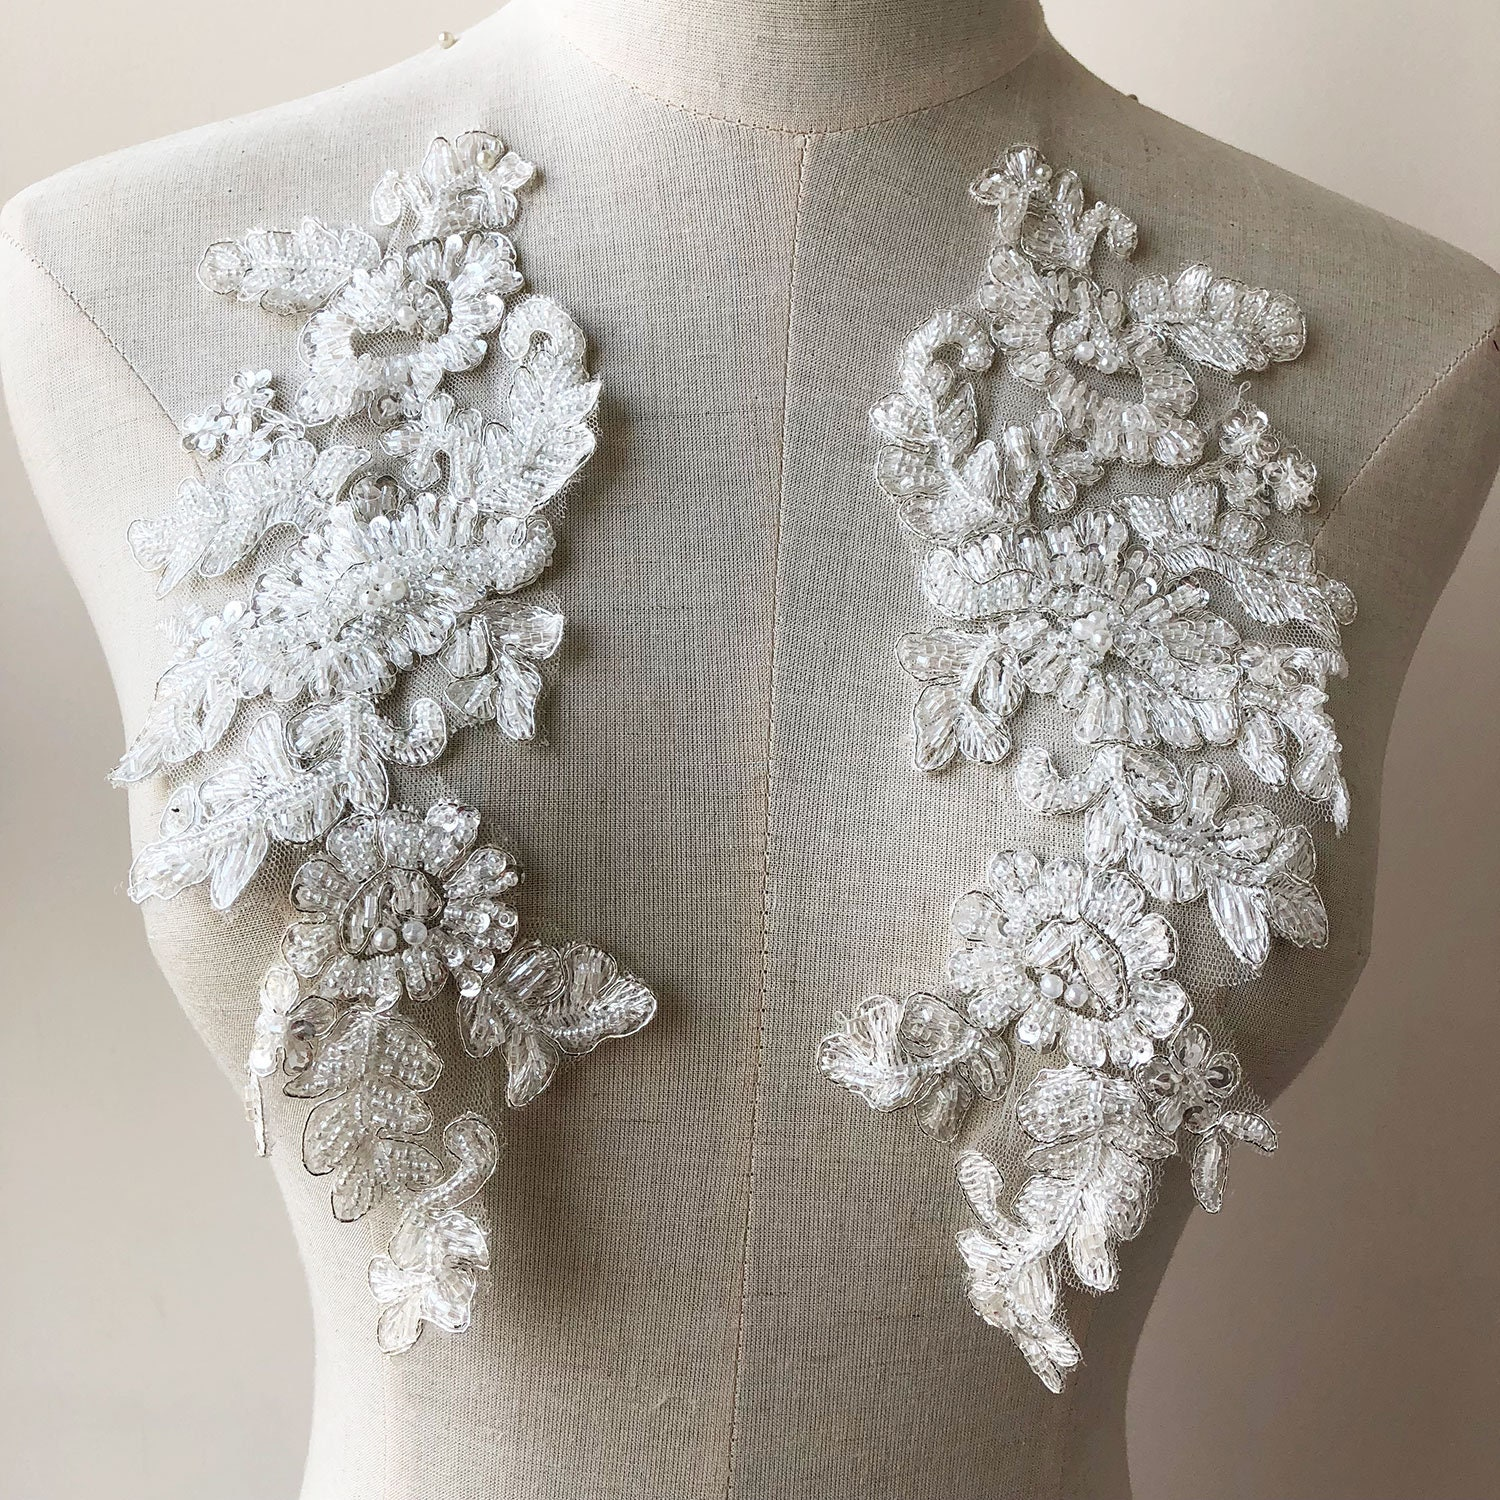 OFF-White Sequined Lace Applique Beading Lace Appliques Silver Corded Flower  lace Patches Embroidery Bridal Dress Addition Fringe 2pcs dcb50dd975b6